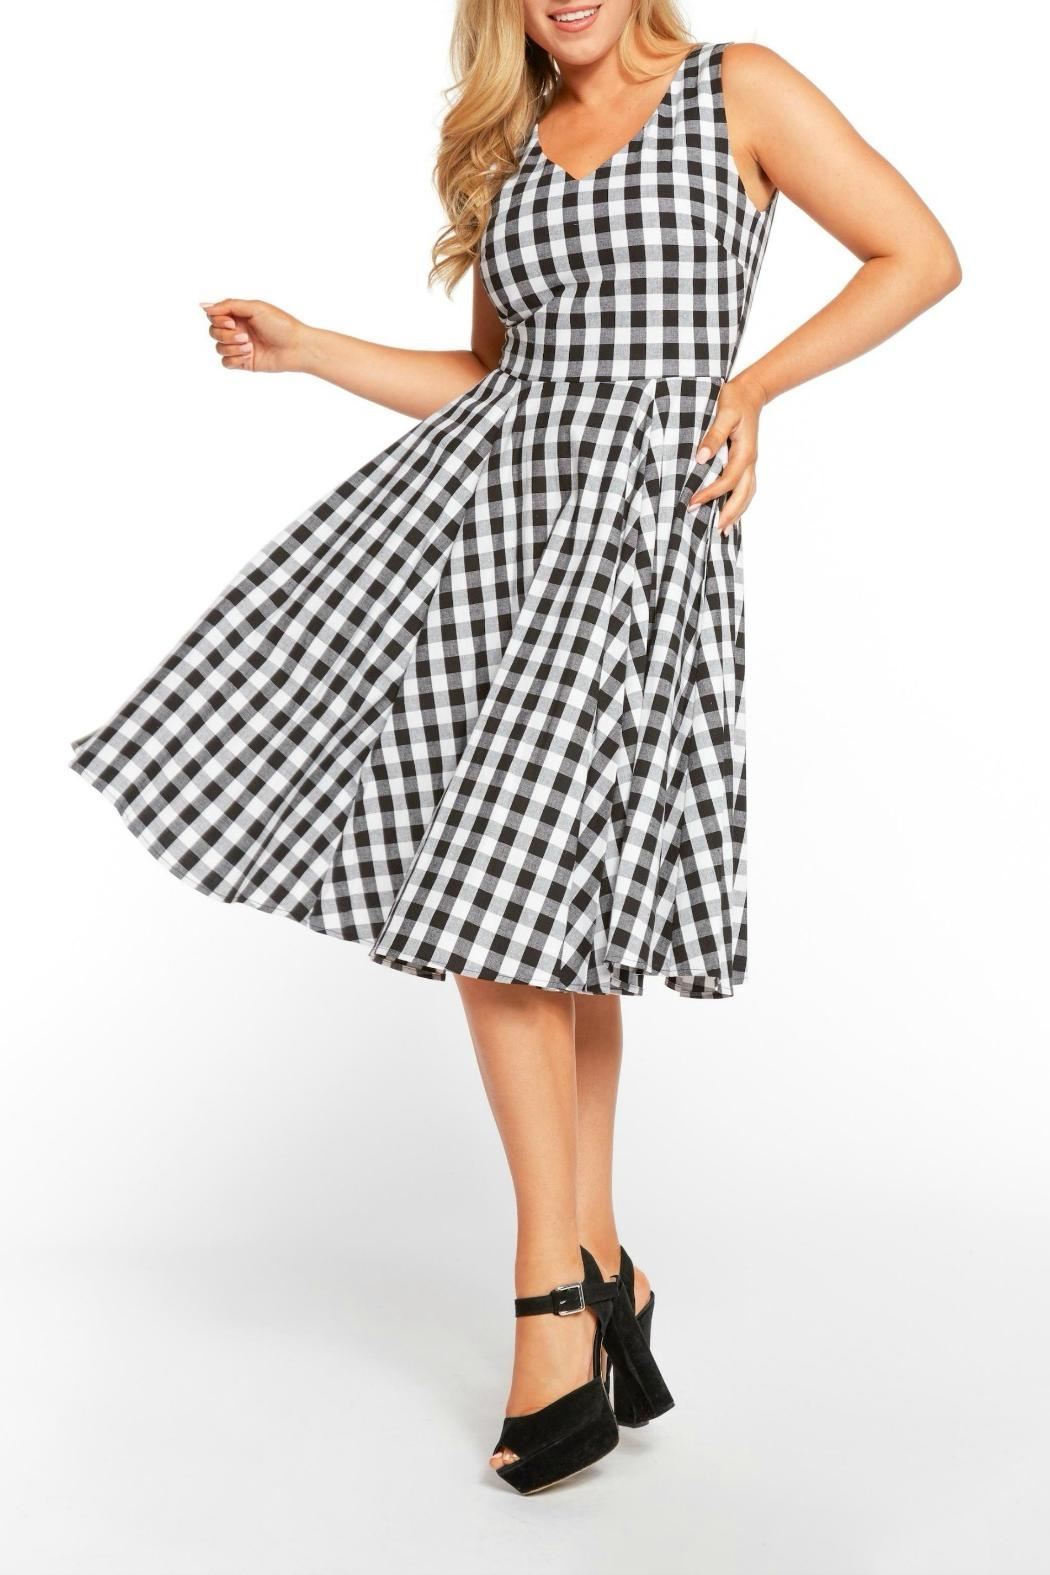 1c096bb20e3 MHGS Gingham Pocket Dress from Florida by Mad Hatter General Store ...